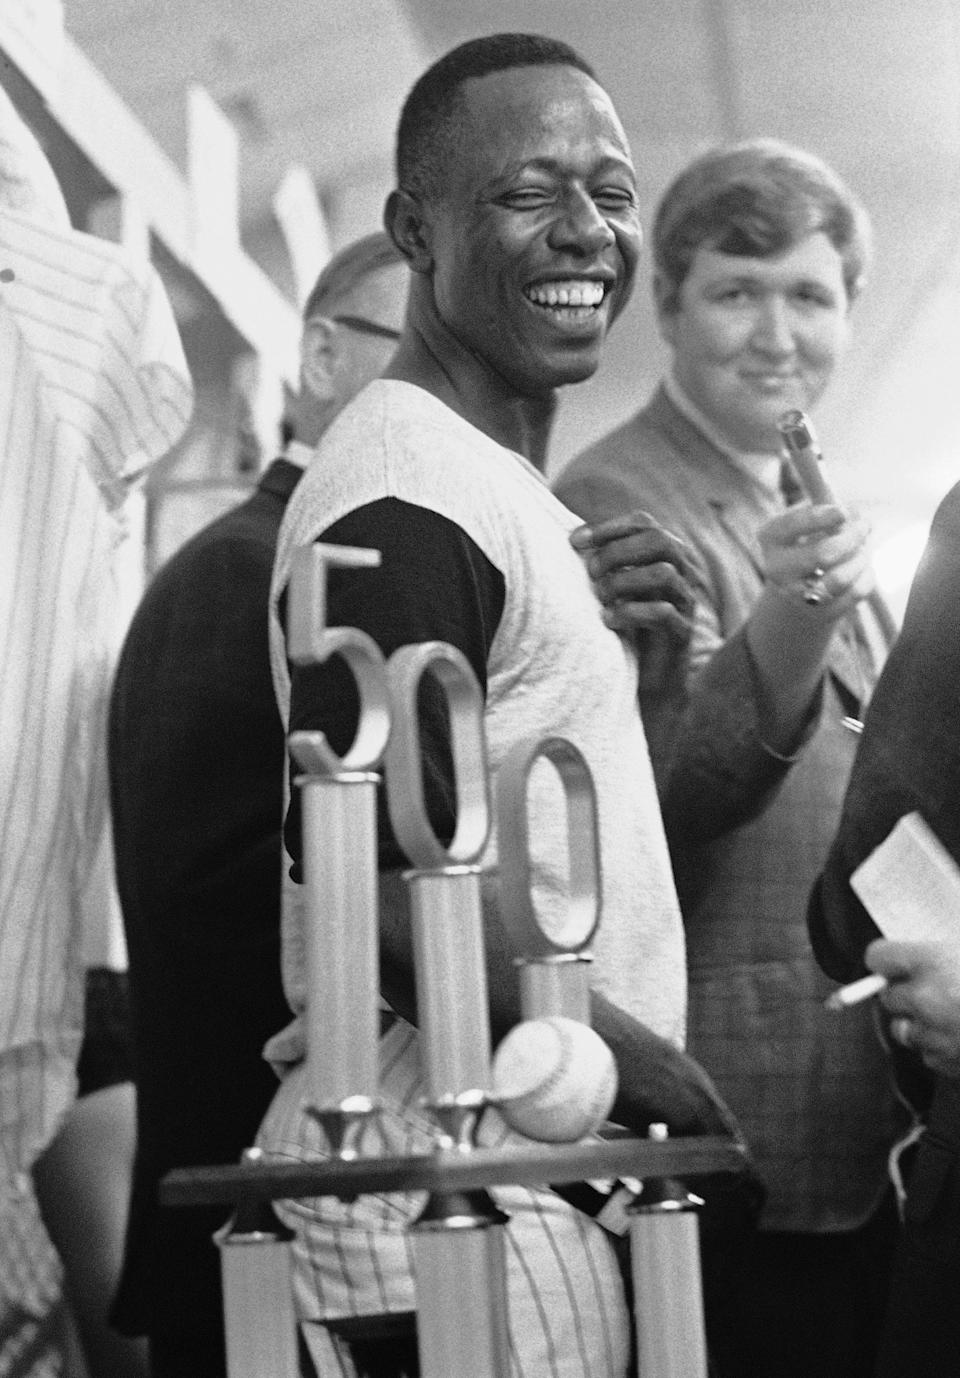 FILE- In this July 14, 1968, file photo, Atlanta Braves' Hank Aaron smiles as he looks at the trophy presented him by Braves President Bill Bartholomay, after Aaron hit his 500th career home run in Atlanta. Hank Aaron, who endured racist threats with stoic dignity during his pursuit of Babe Ruth but went on to break the career home run record in the pre-steroids era, died early Friday, Jan. 22, 2021. He was 86. The Atlanta Braves said Aaron died peacefully in his sleep. No cause of death was given. (AP Photo/Charles Kelly, File)